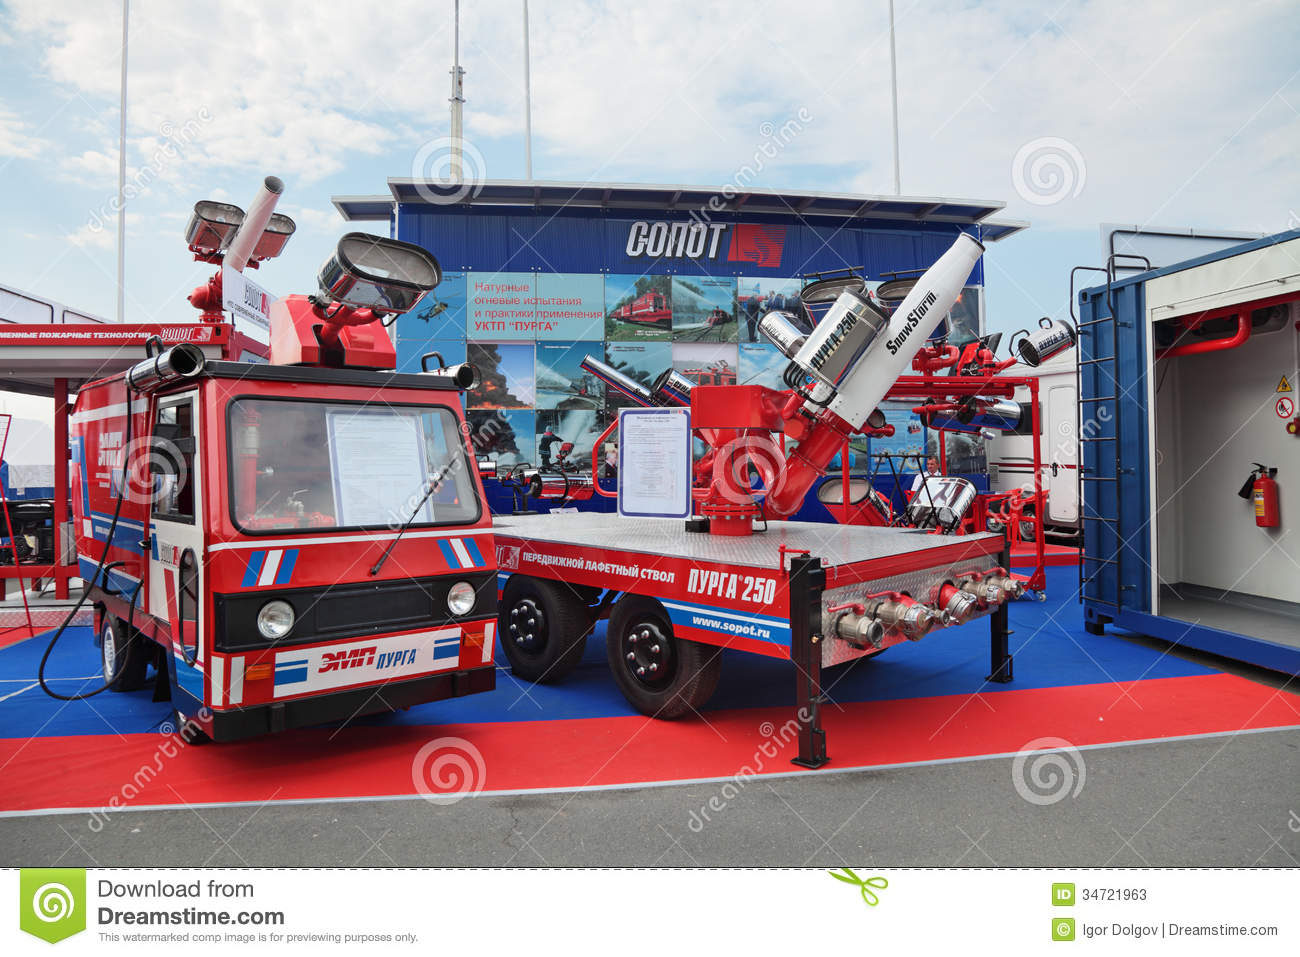 Exhibition Display Equipment : Fire equipment editorial stock photo image of device